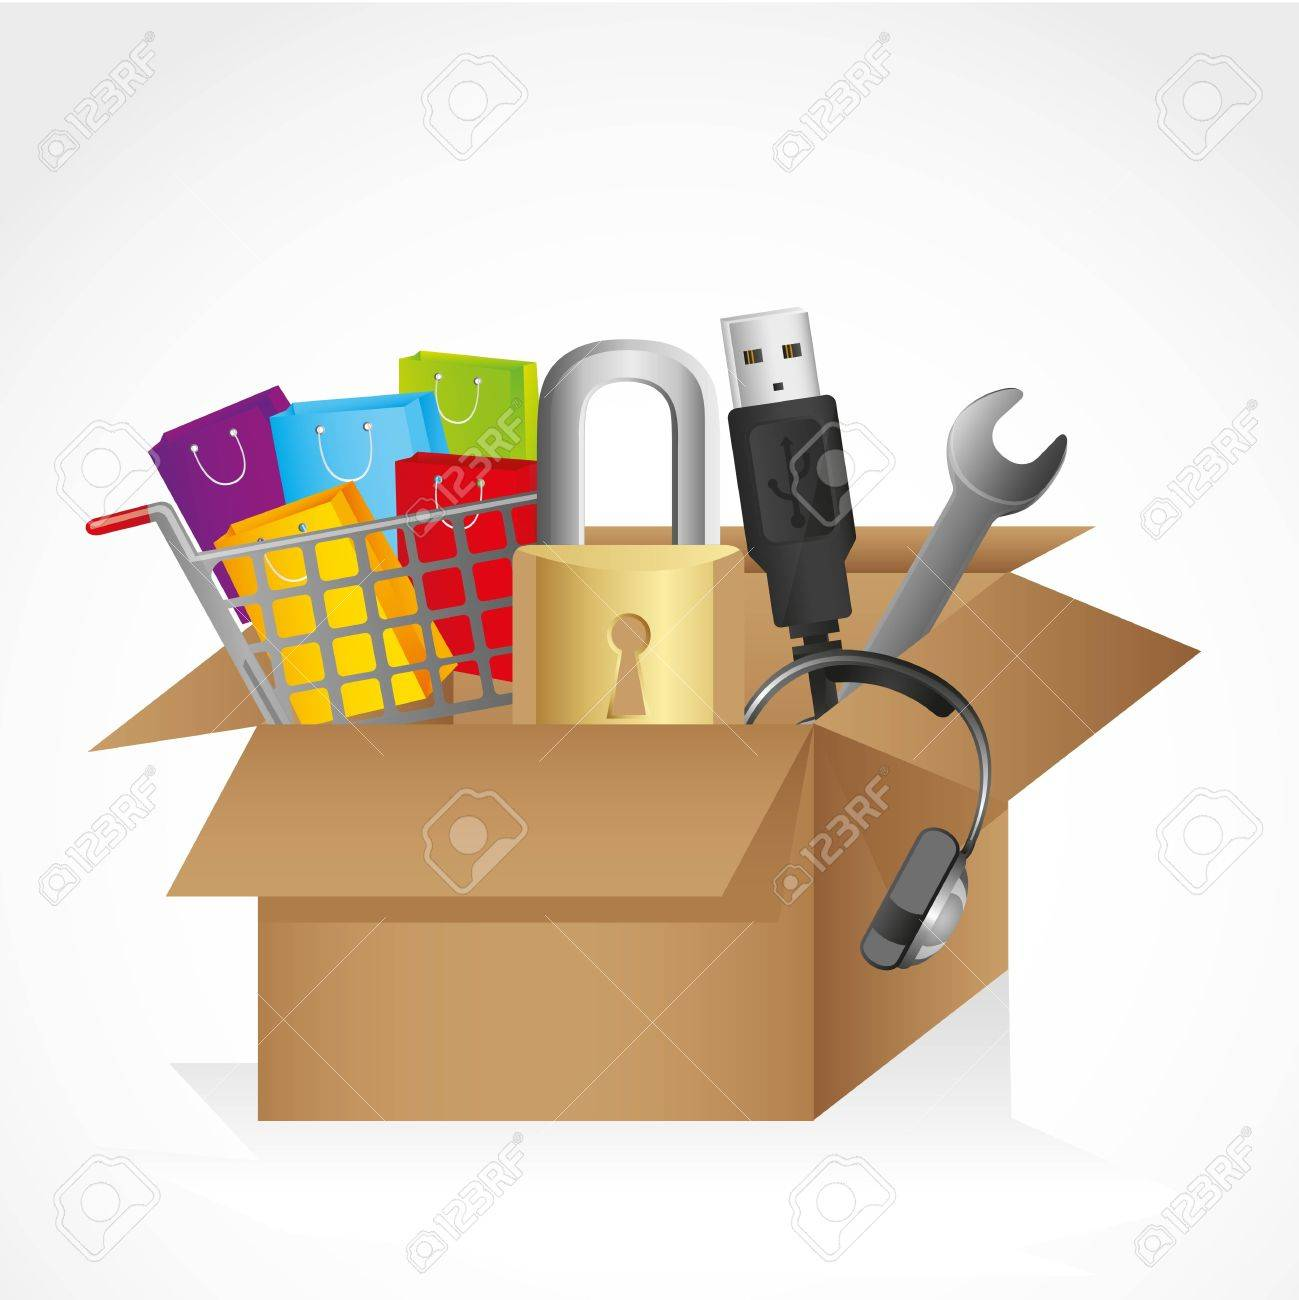 box with icons, contains USB cable, headphones, lock, and shopping cart packages. Stock Vector - 14043880